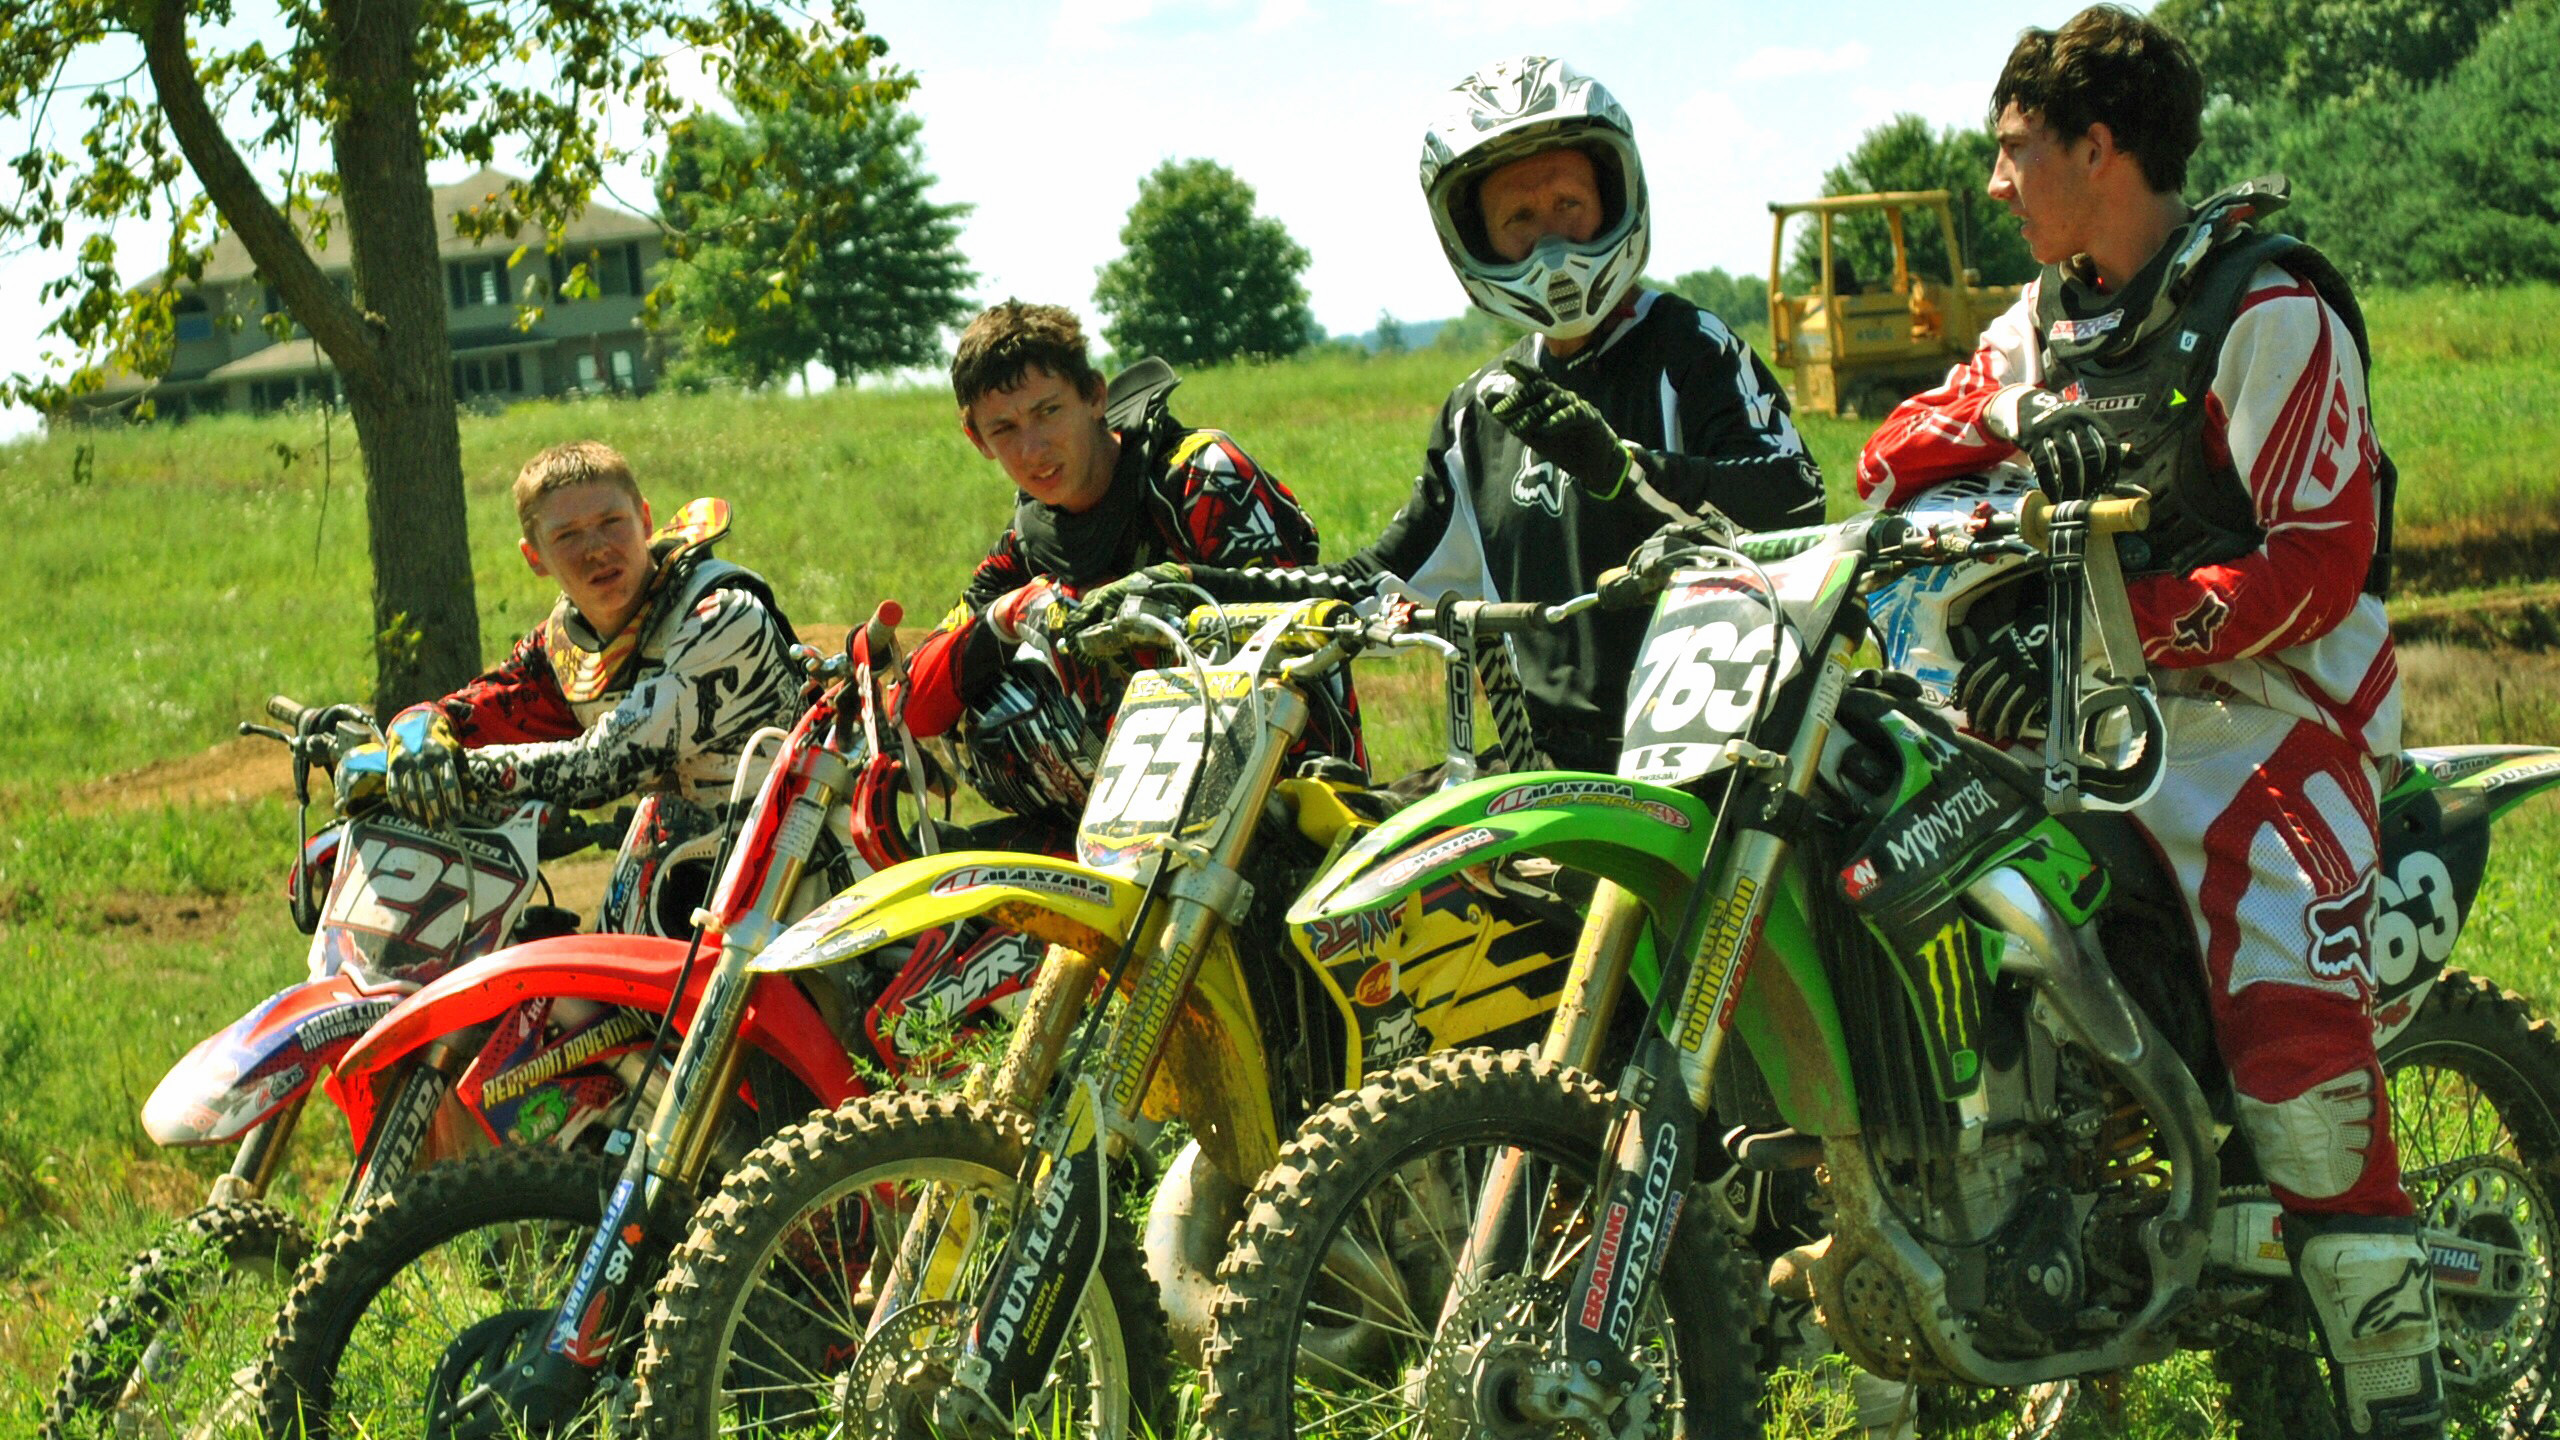 Develop The Skills Of Motocross Pros Through Motocross Racing Training and Practice Drills Used By The Pros